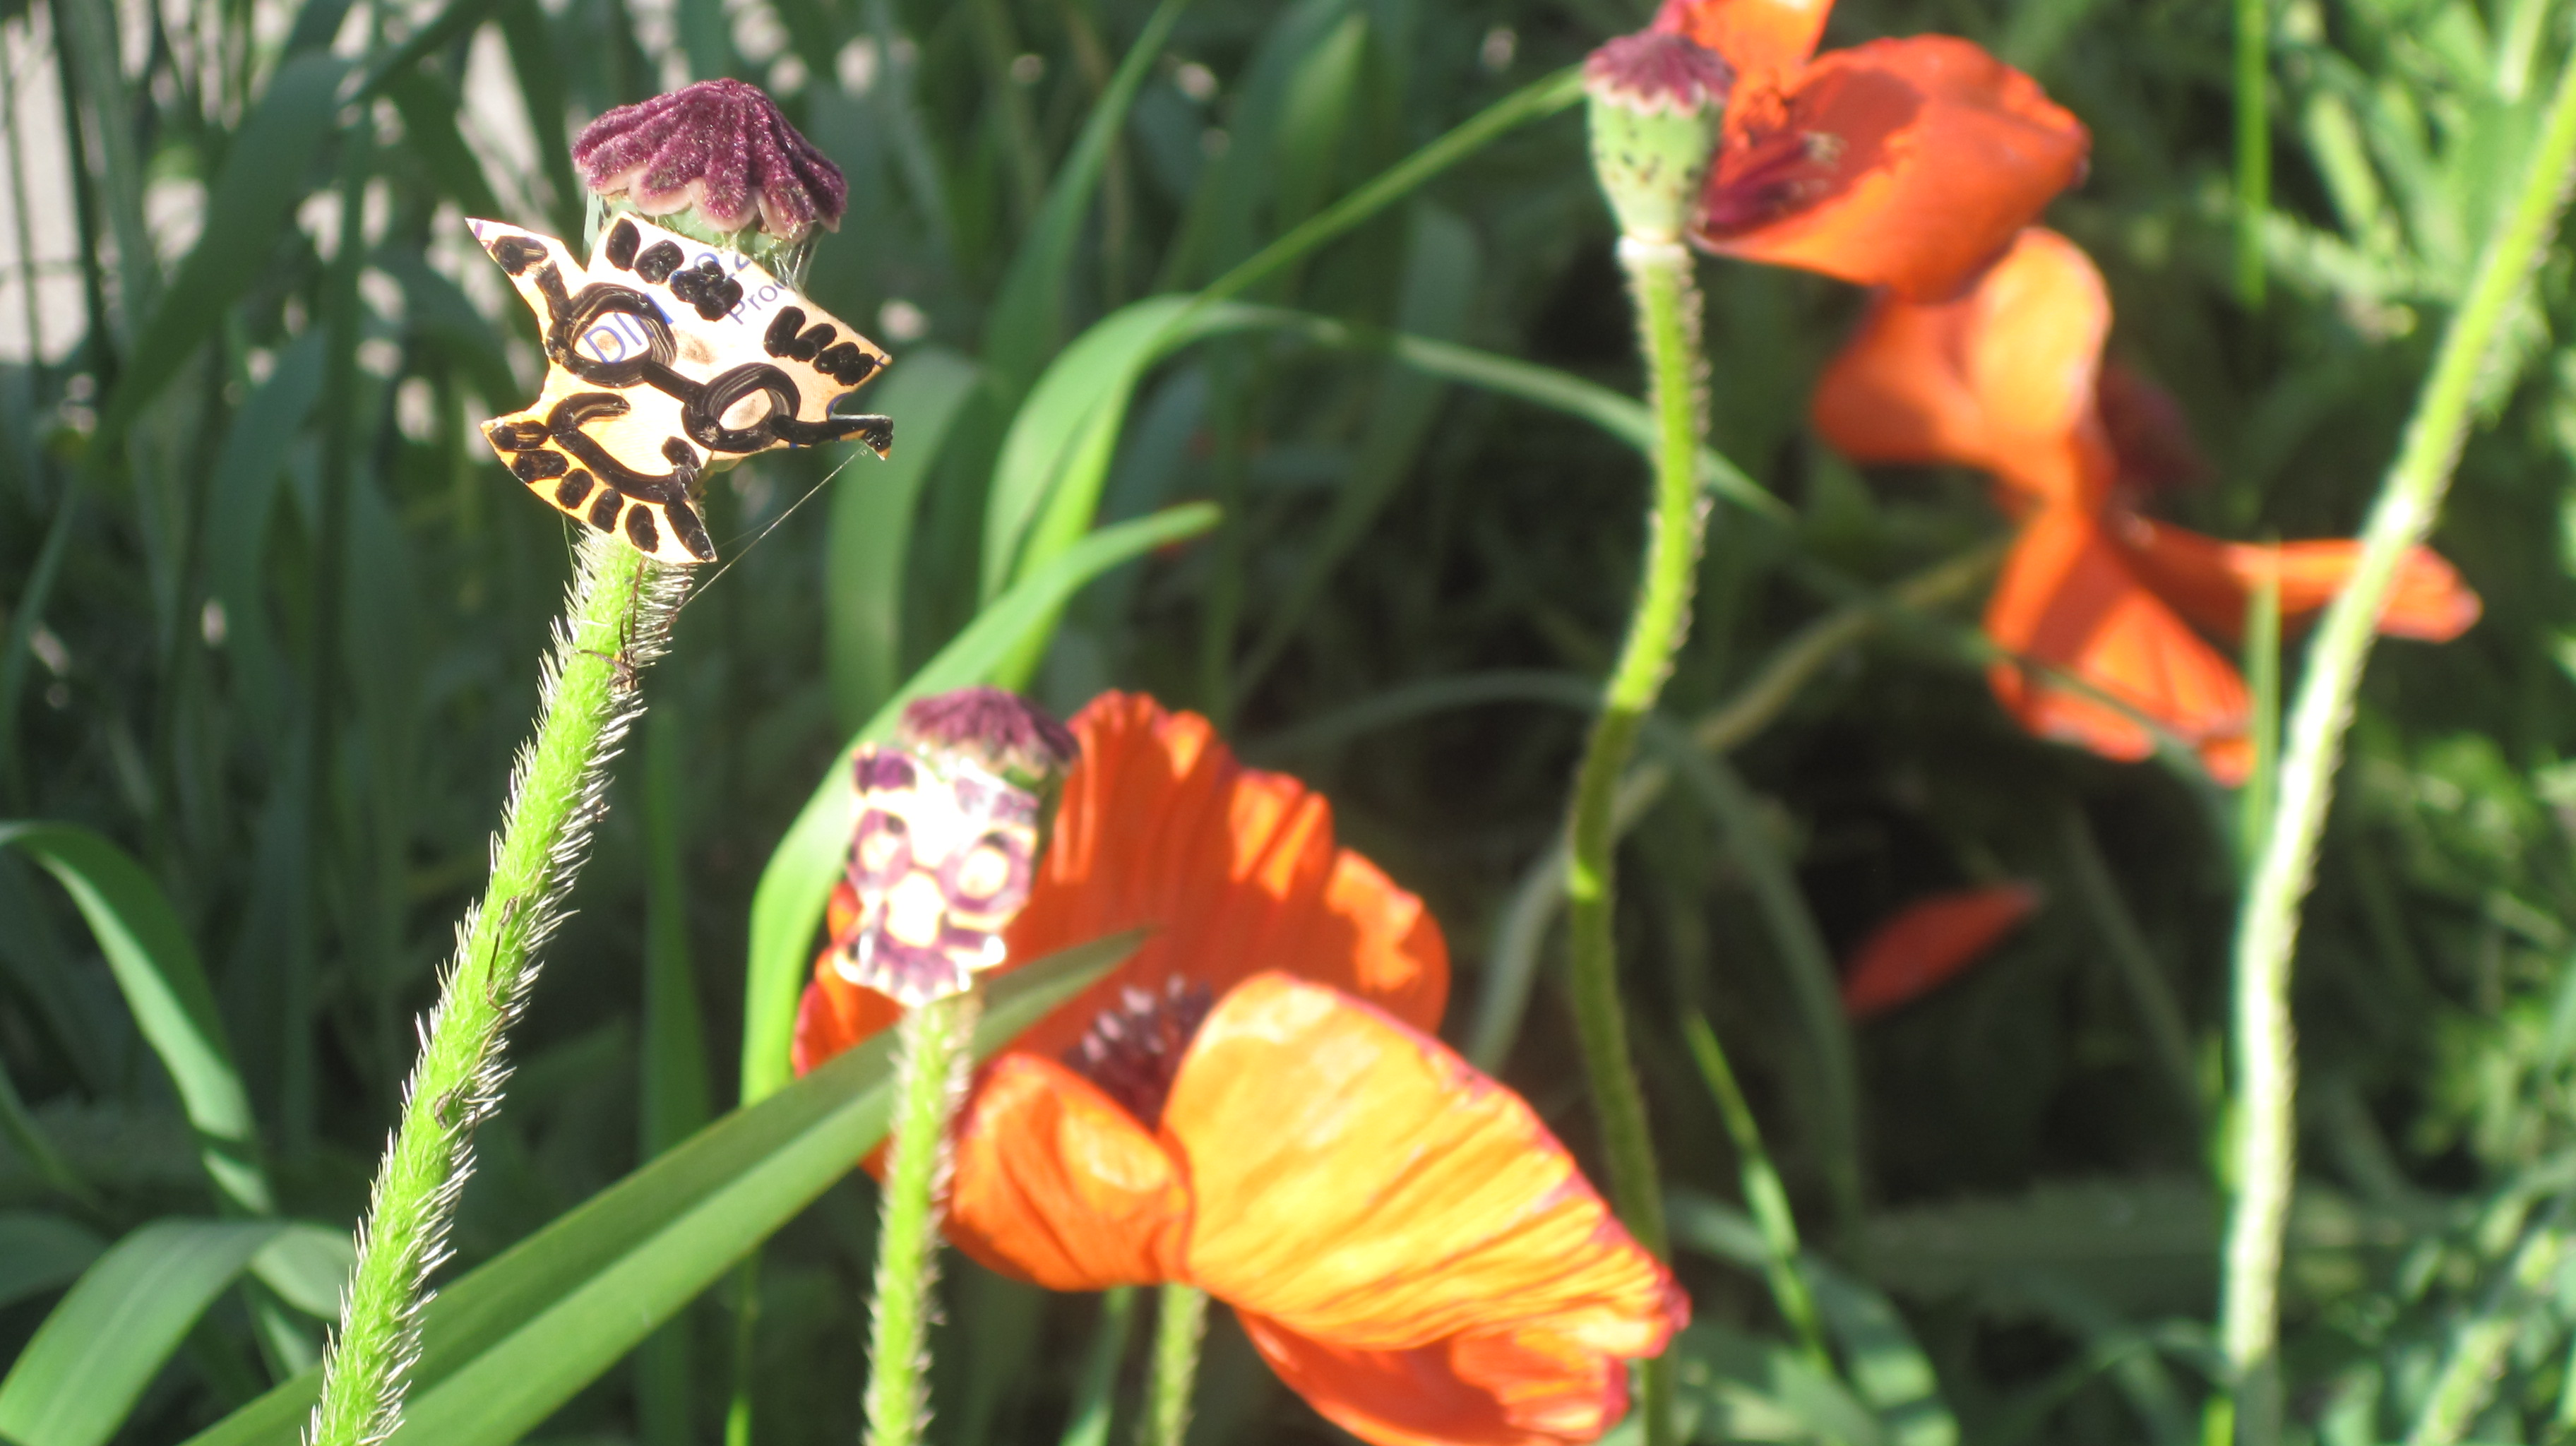 POPPIES NOT POOPIES! Inserting little Groucho Marx faces onto the seed pods